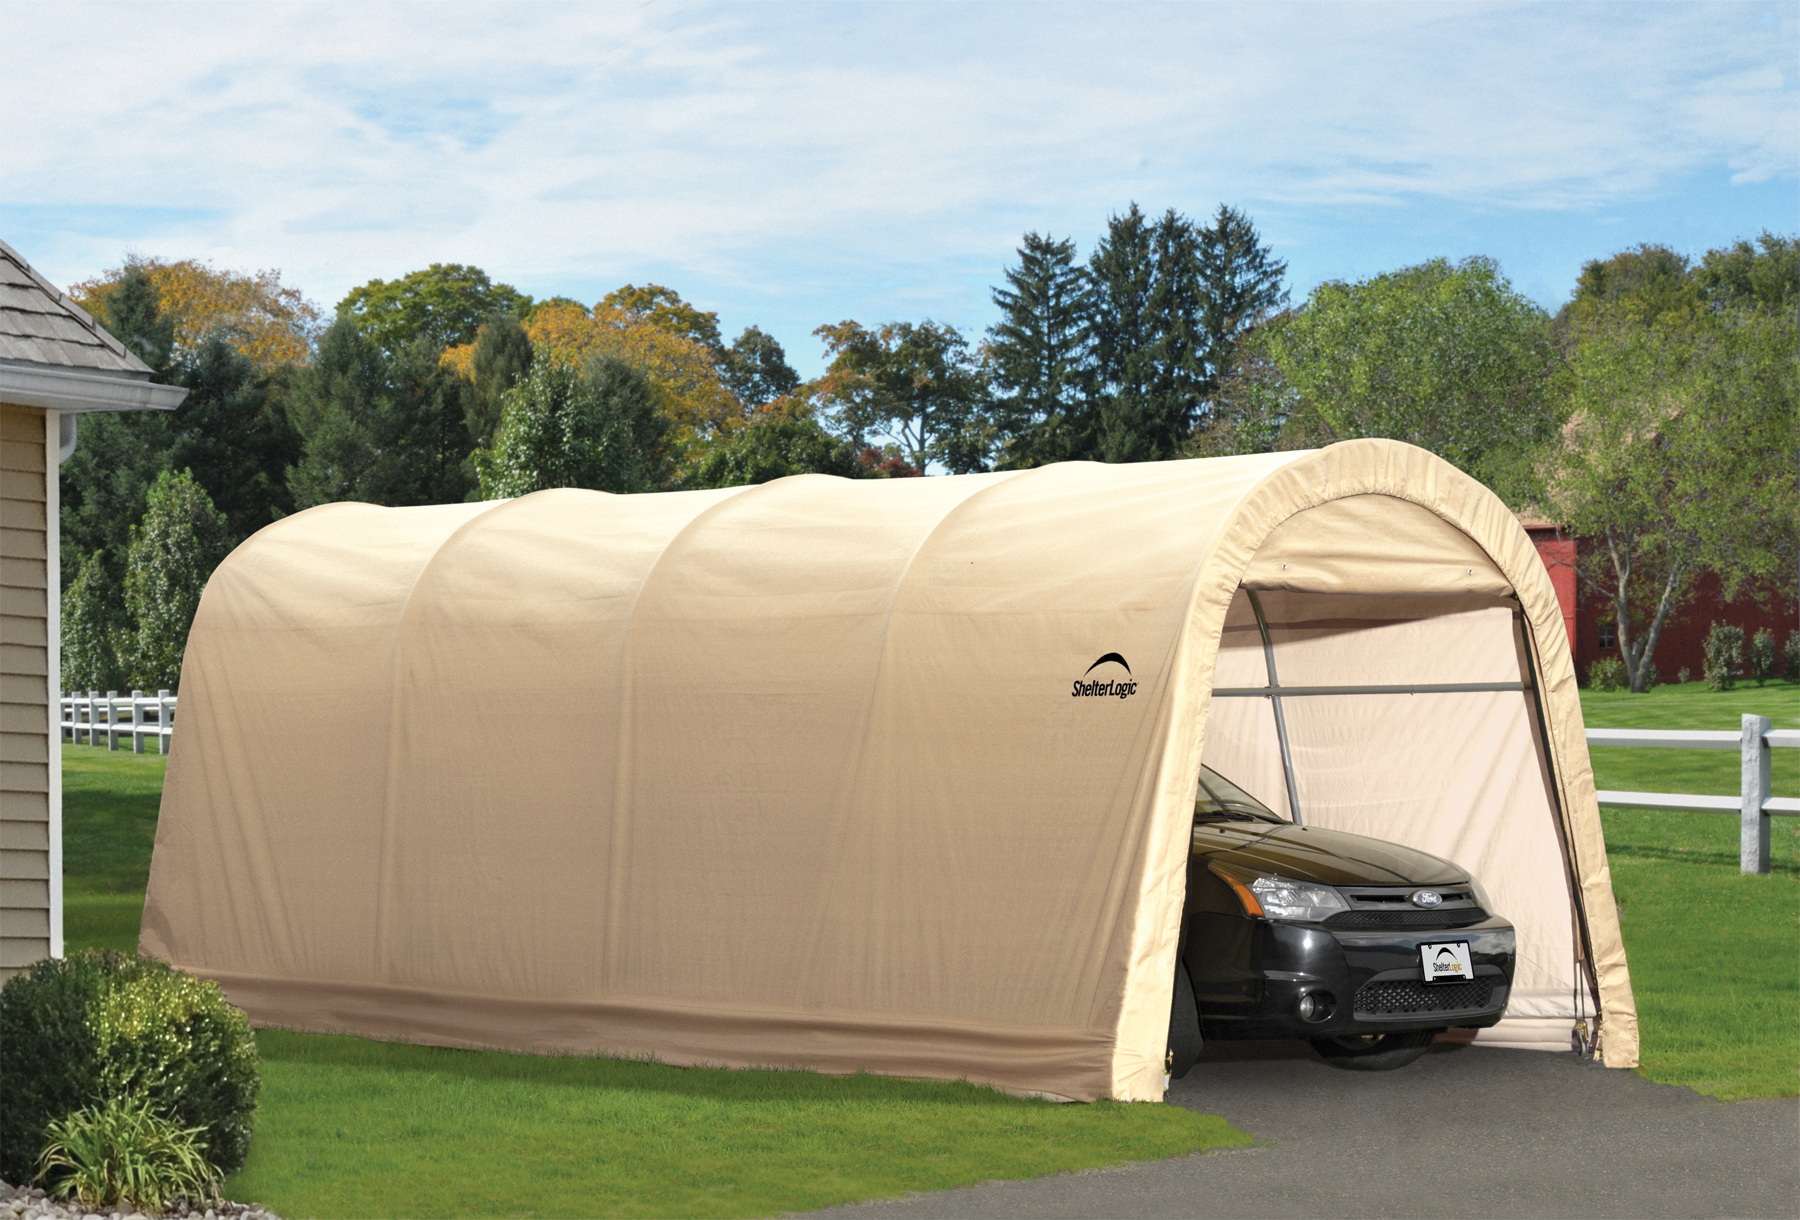 PORTABLE CAR STORAGE TENT BUYING GUIDE Portable Car